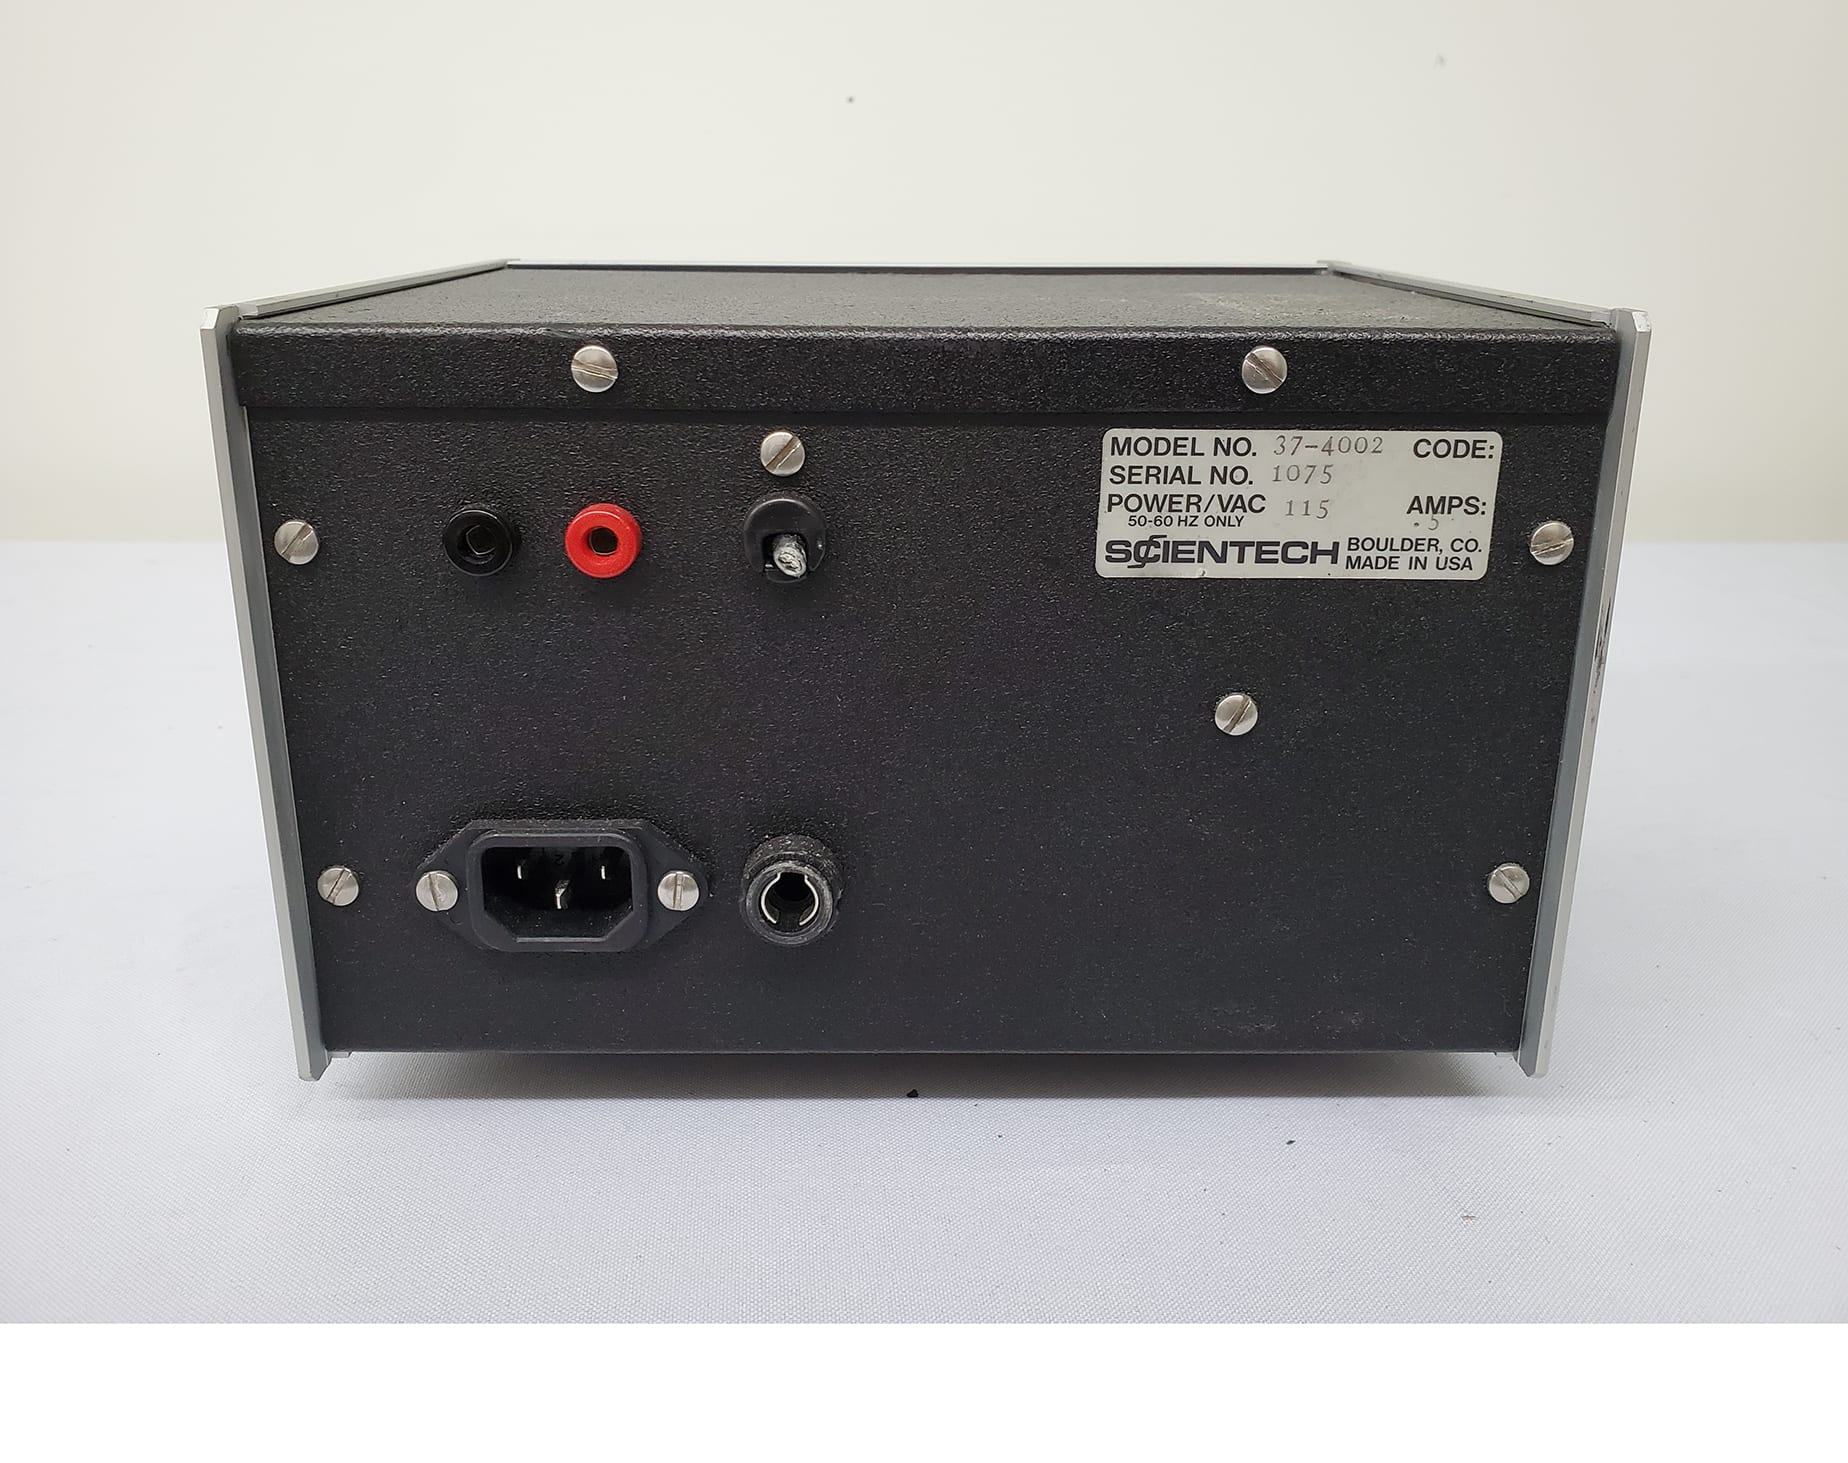 Scientech-37-4002, 374-Power and Energy Meter-58857 For Sale